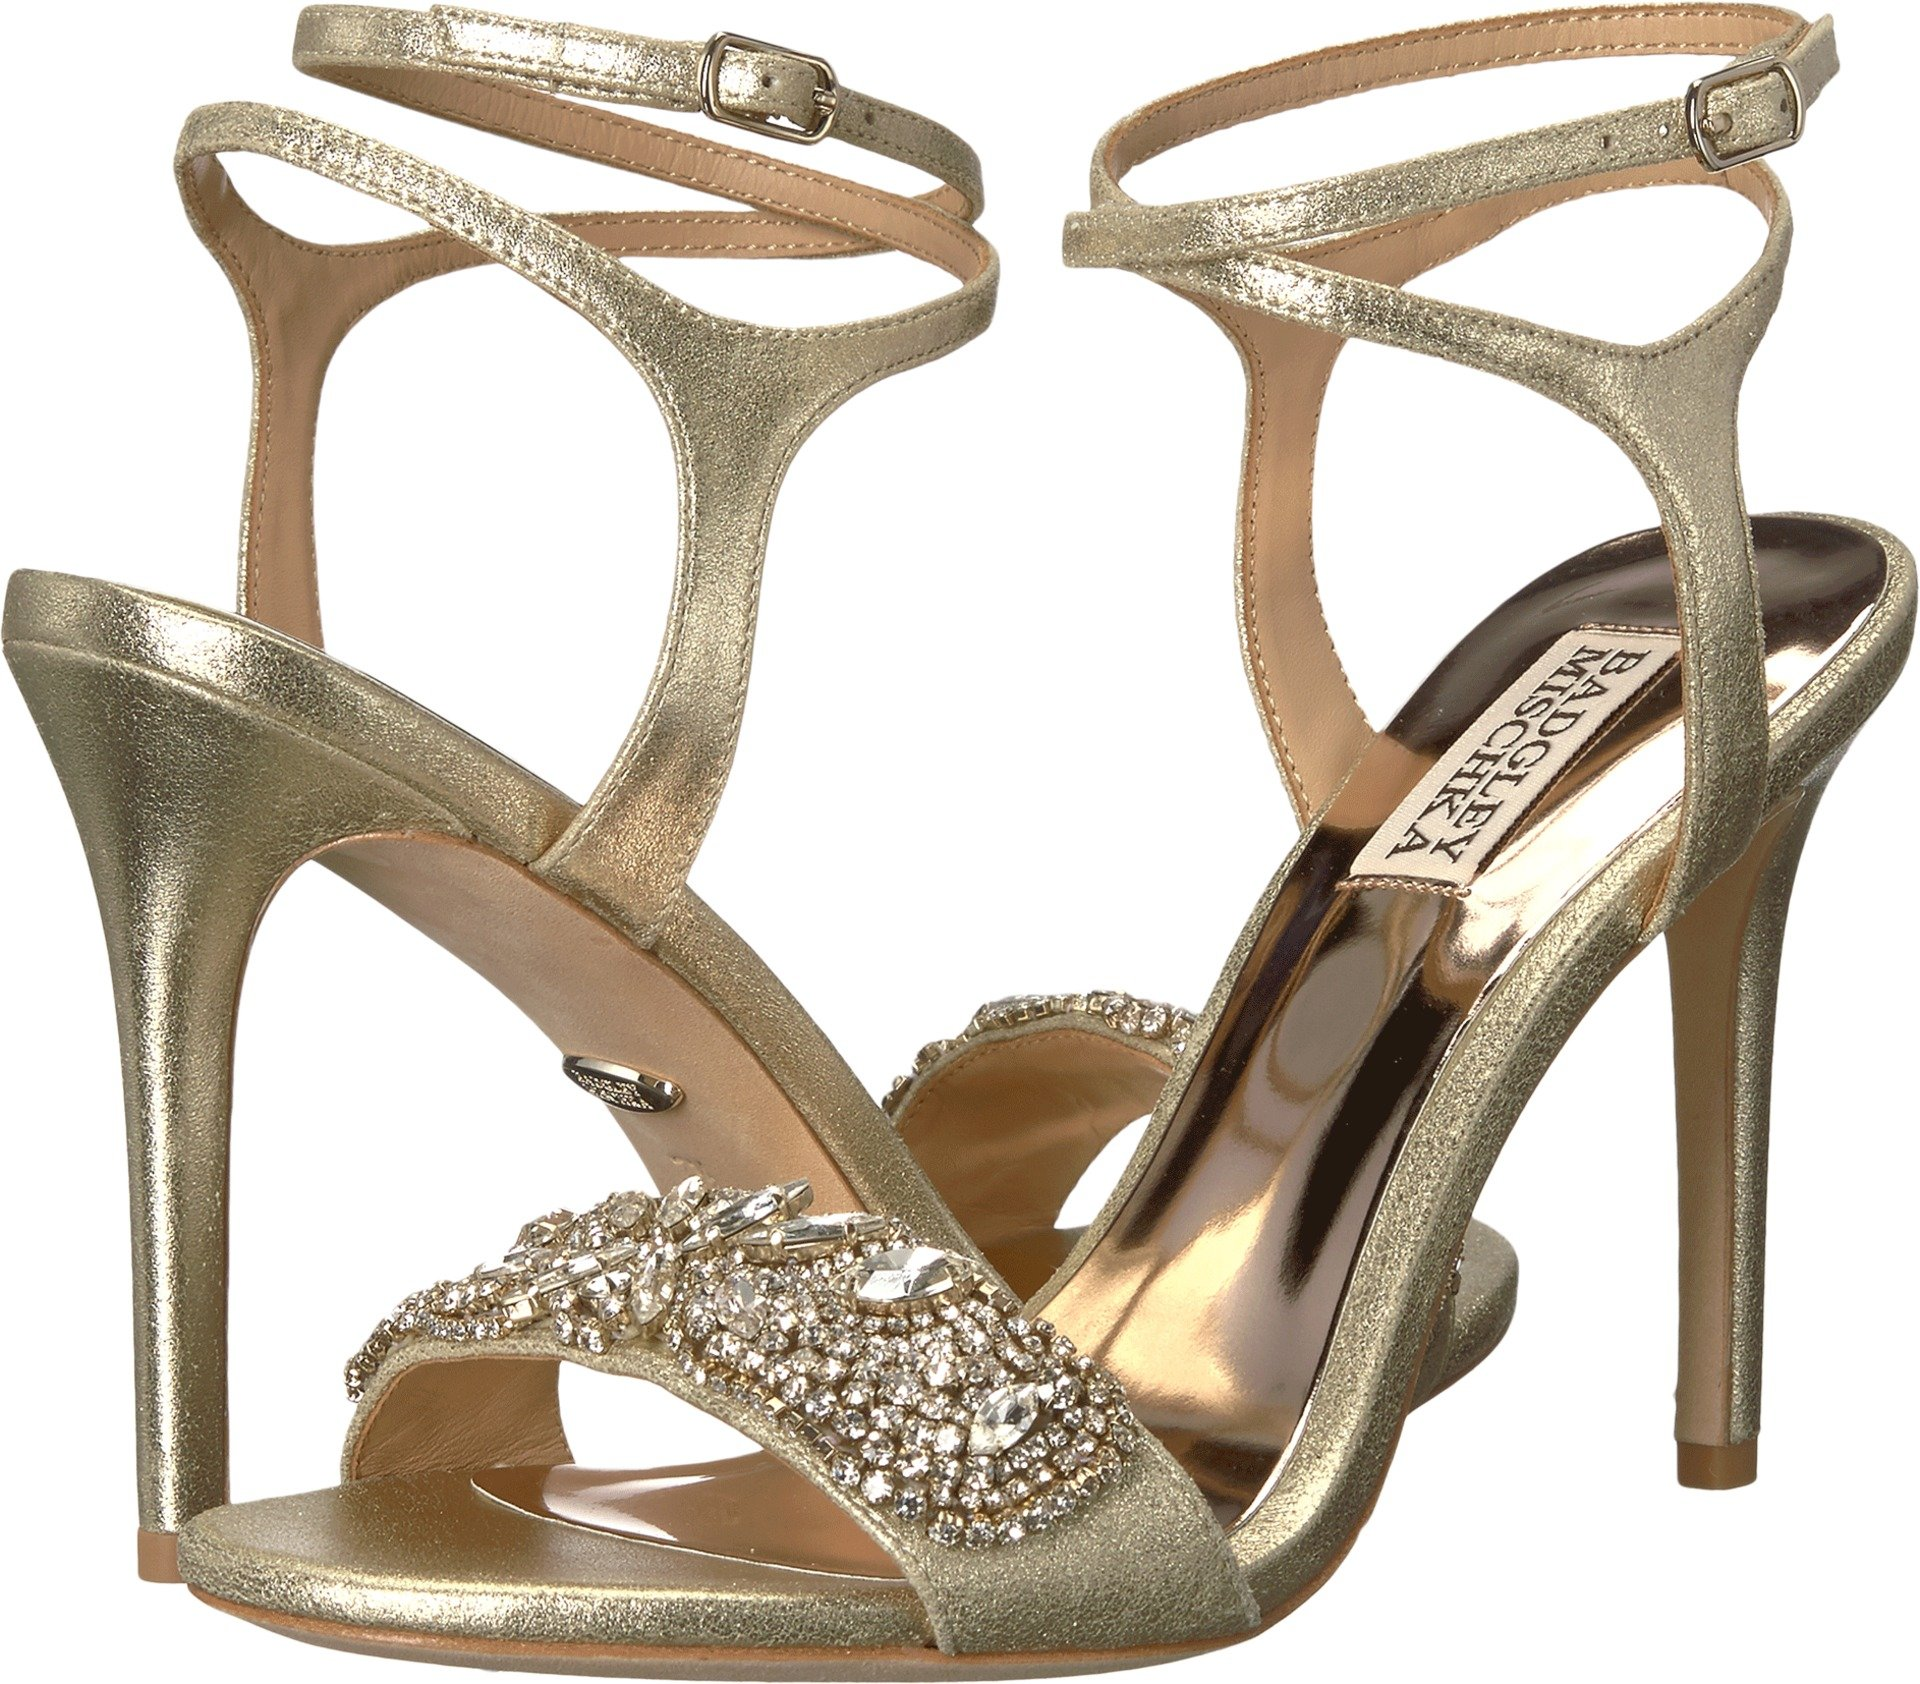 Badgley Mischka Women's Hailey Heeled Sandal, Platino, 6.5 M US by Badgley Mischka